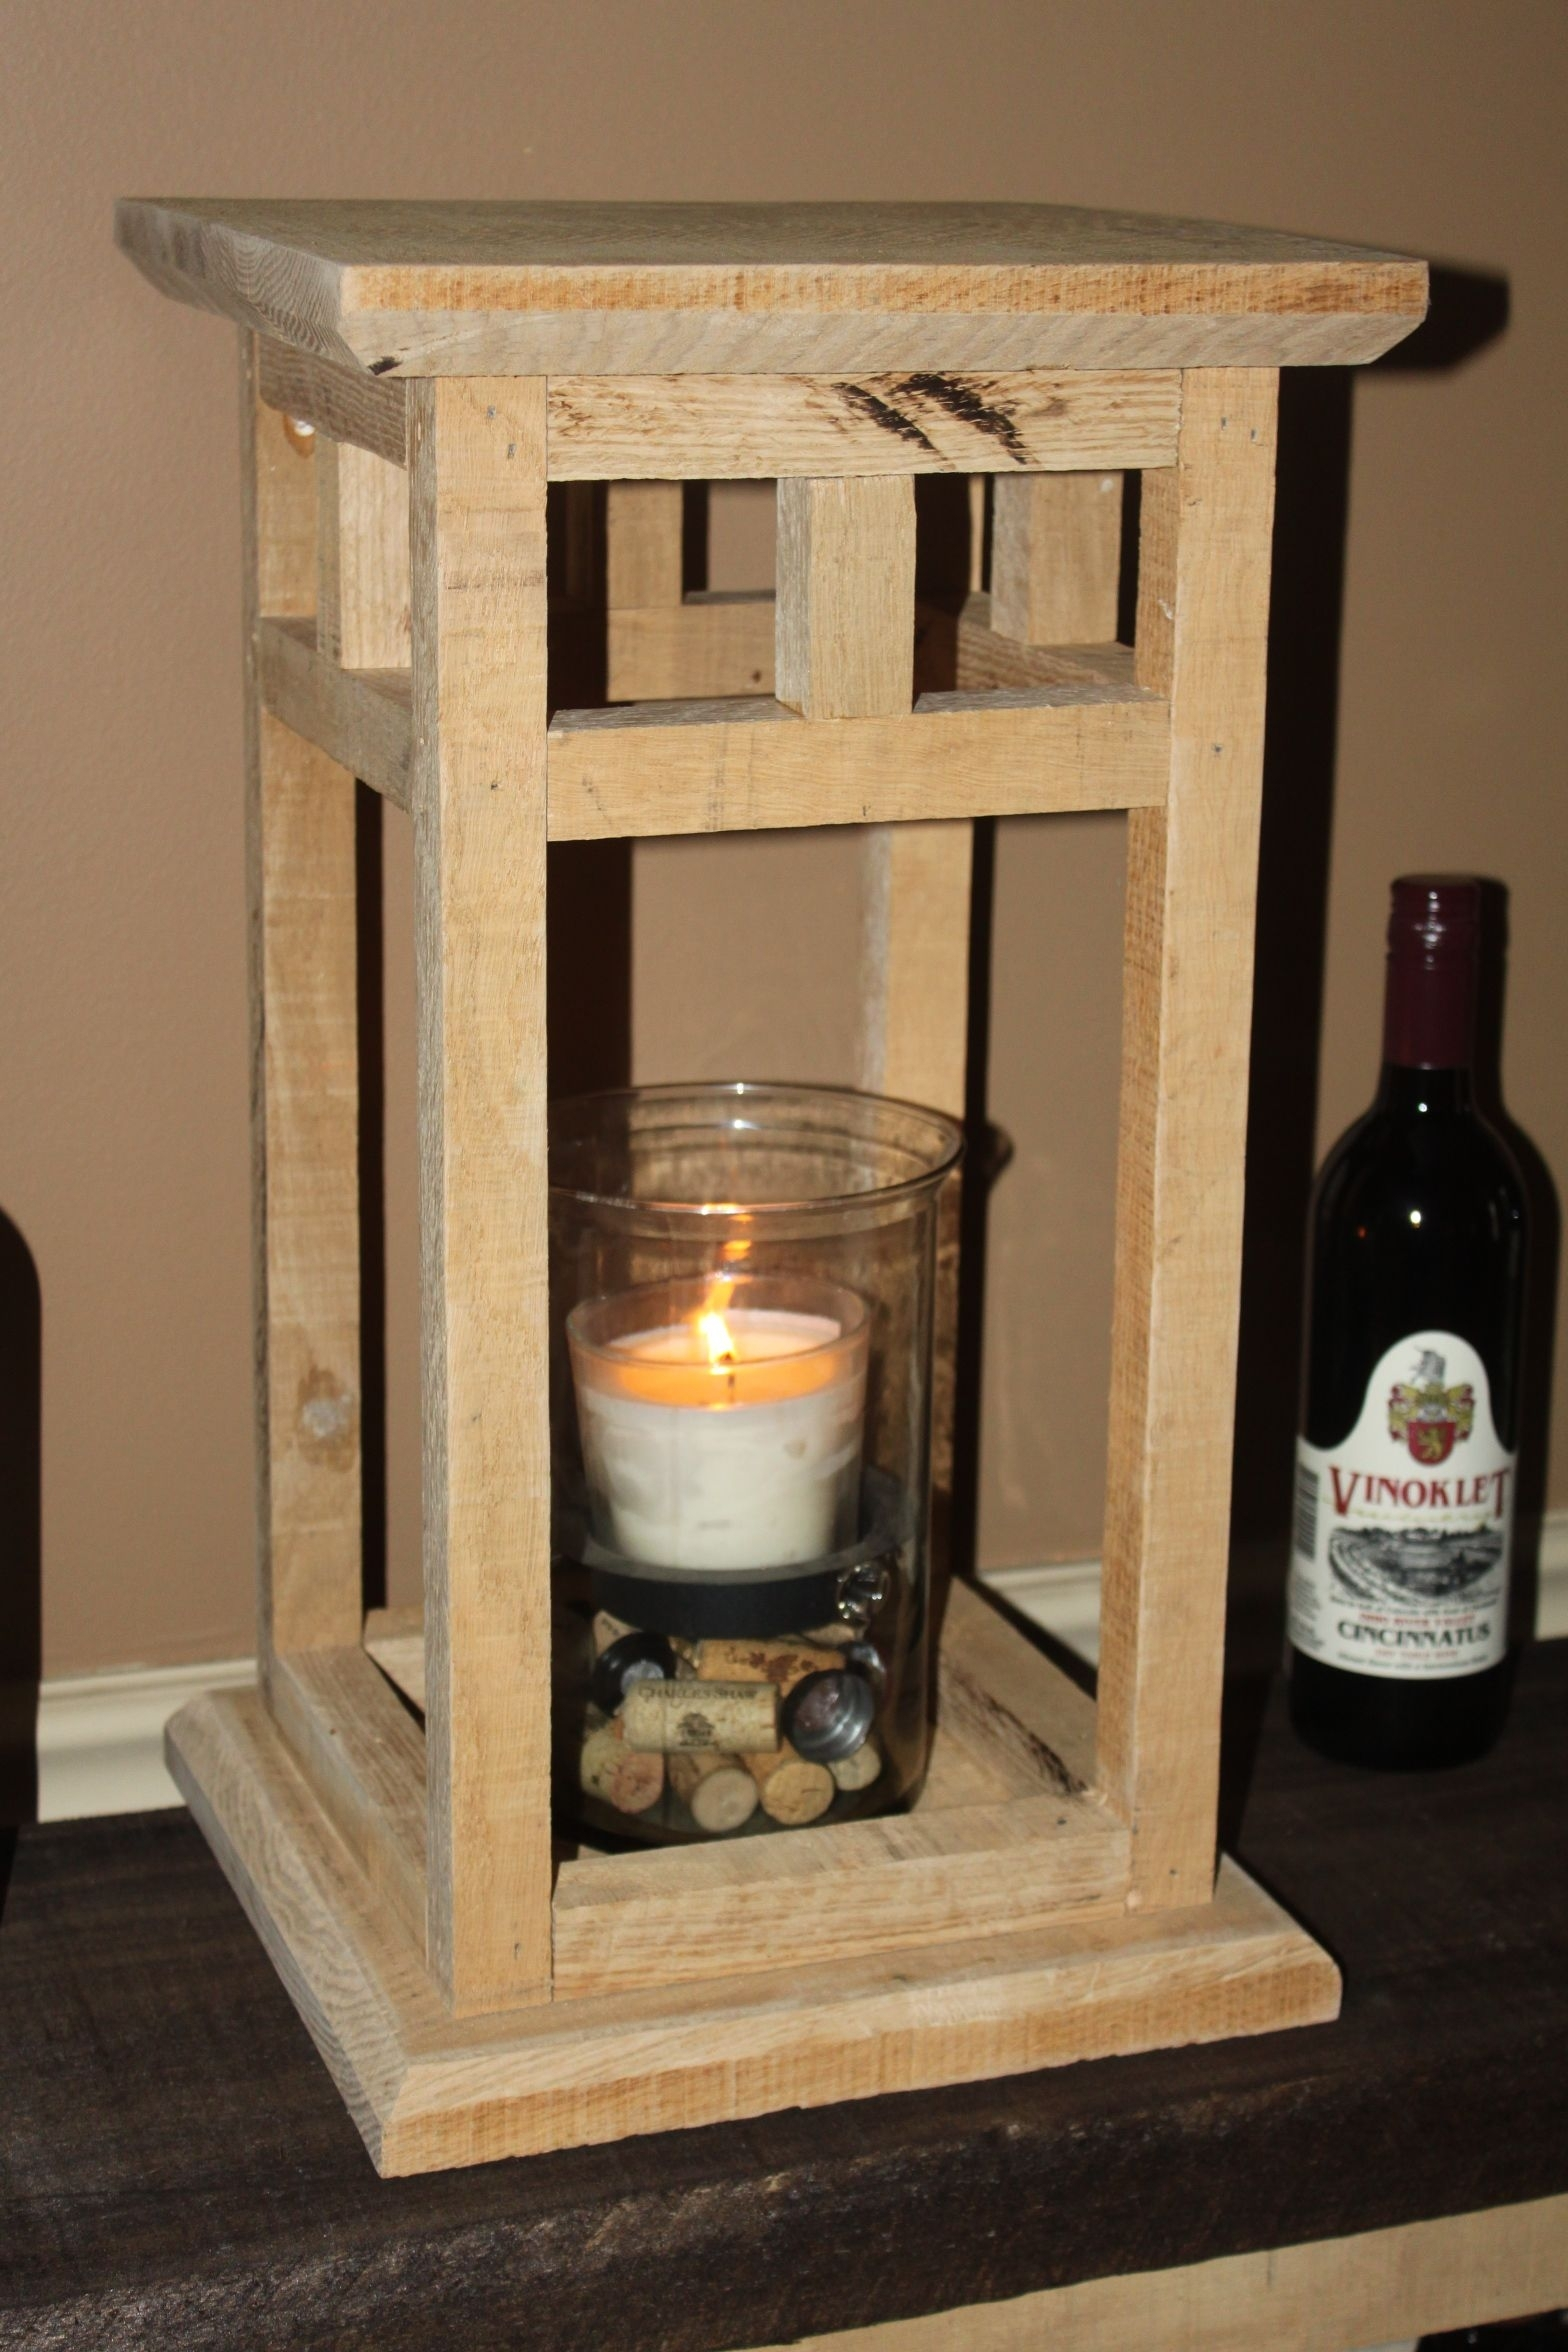 The Diy Rustic Wood Lantern Project – Made From Pallets! | Our Diy Intended For Outdoor Oversized Lanterns (View 14 of 20)